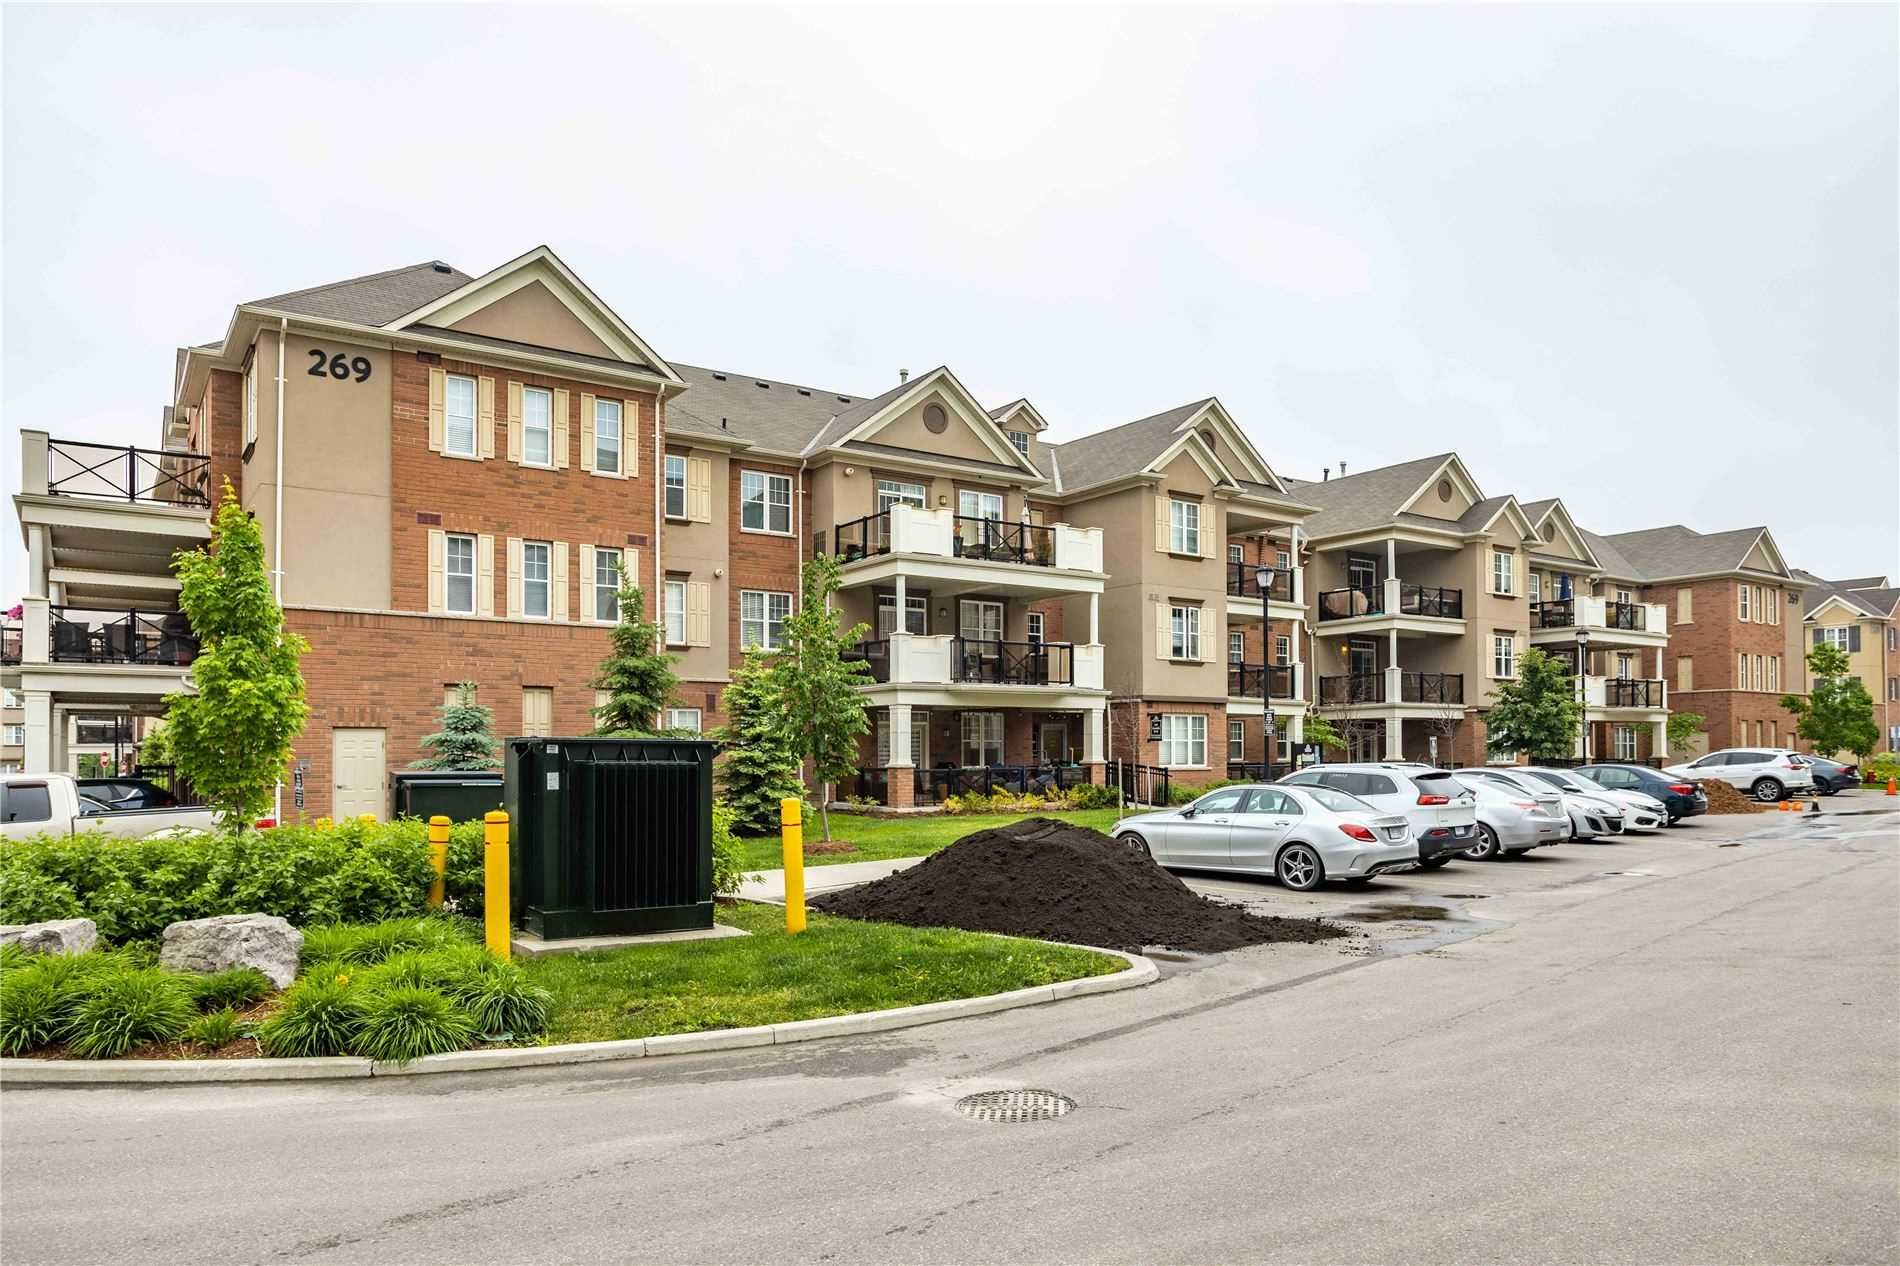 269 Georgian Dr, unit 101 for sale in Toronto - image #1